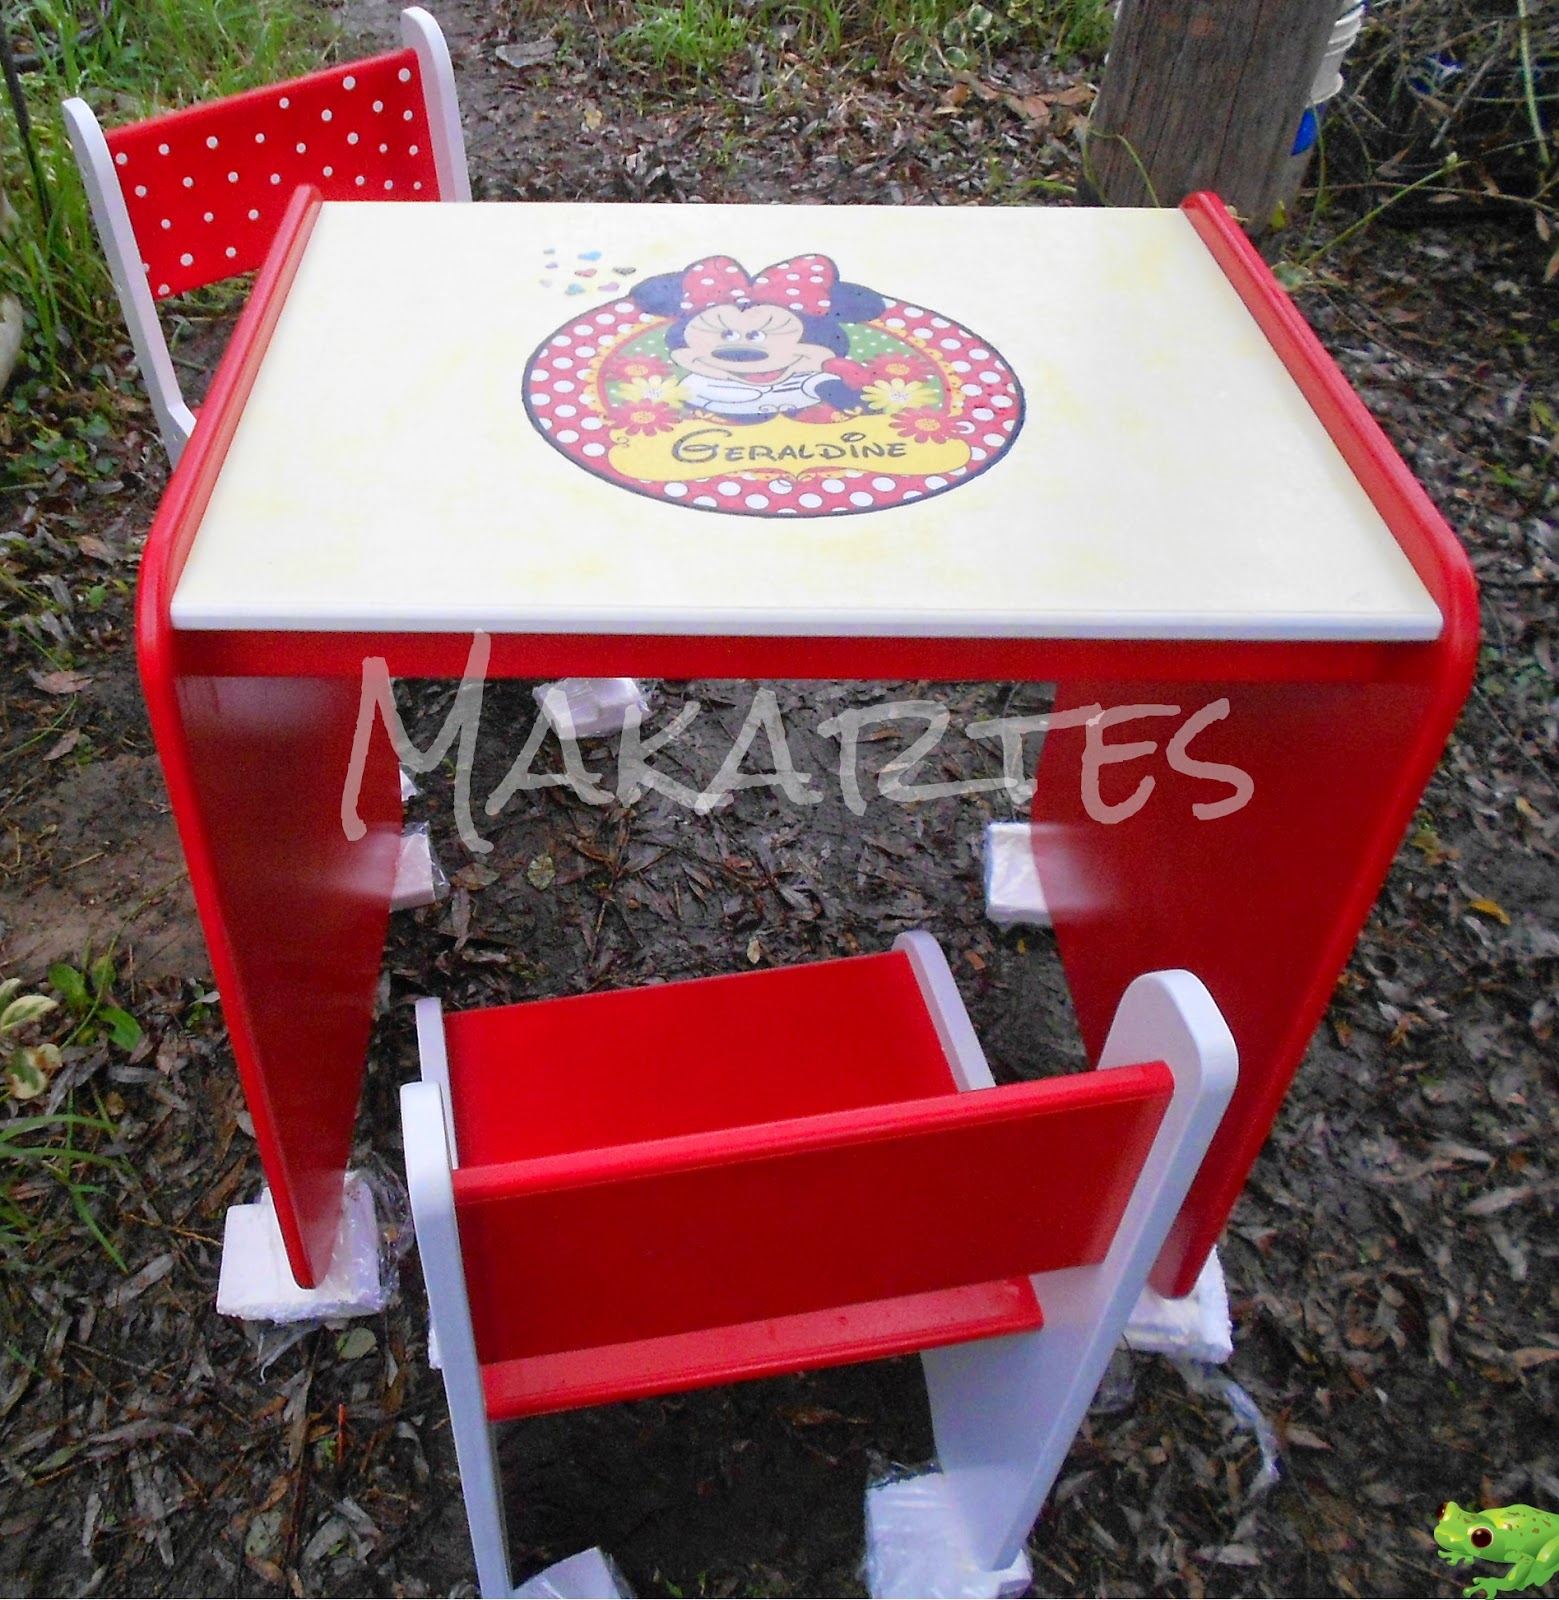 Minnie Table And Chairs Swing Chair Lowest Price Makartes Artesanías Mesa Y Sillas Quotminnie Quot